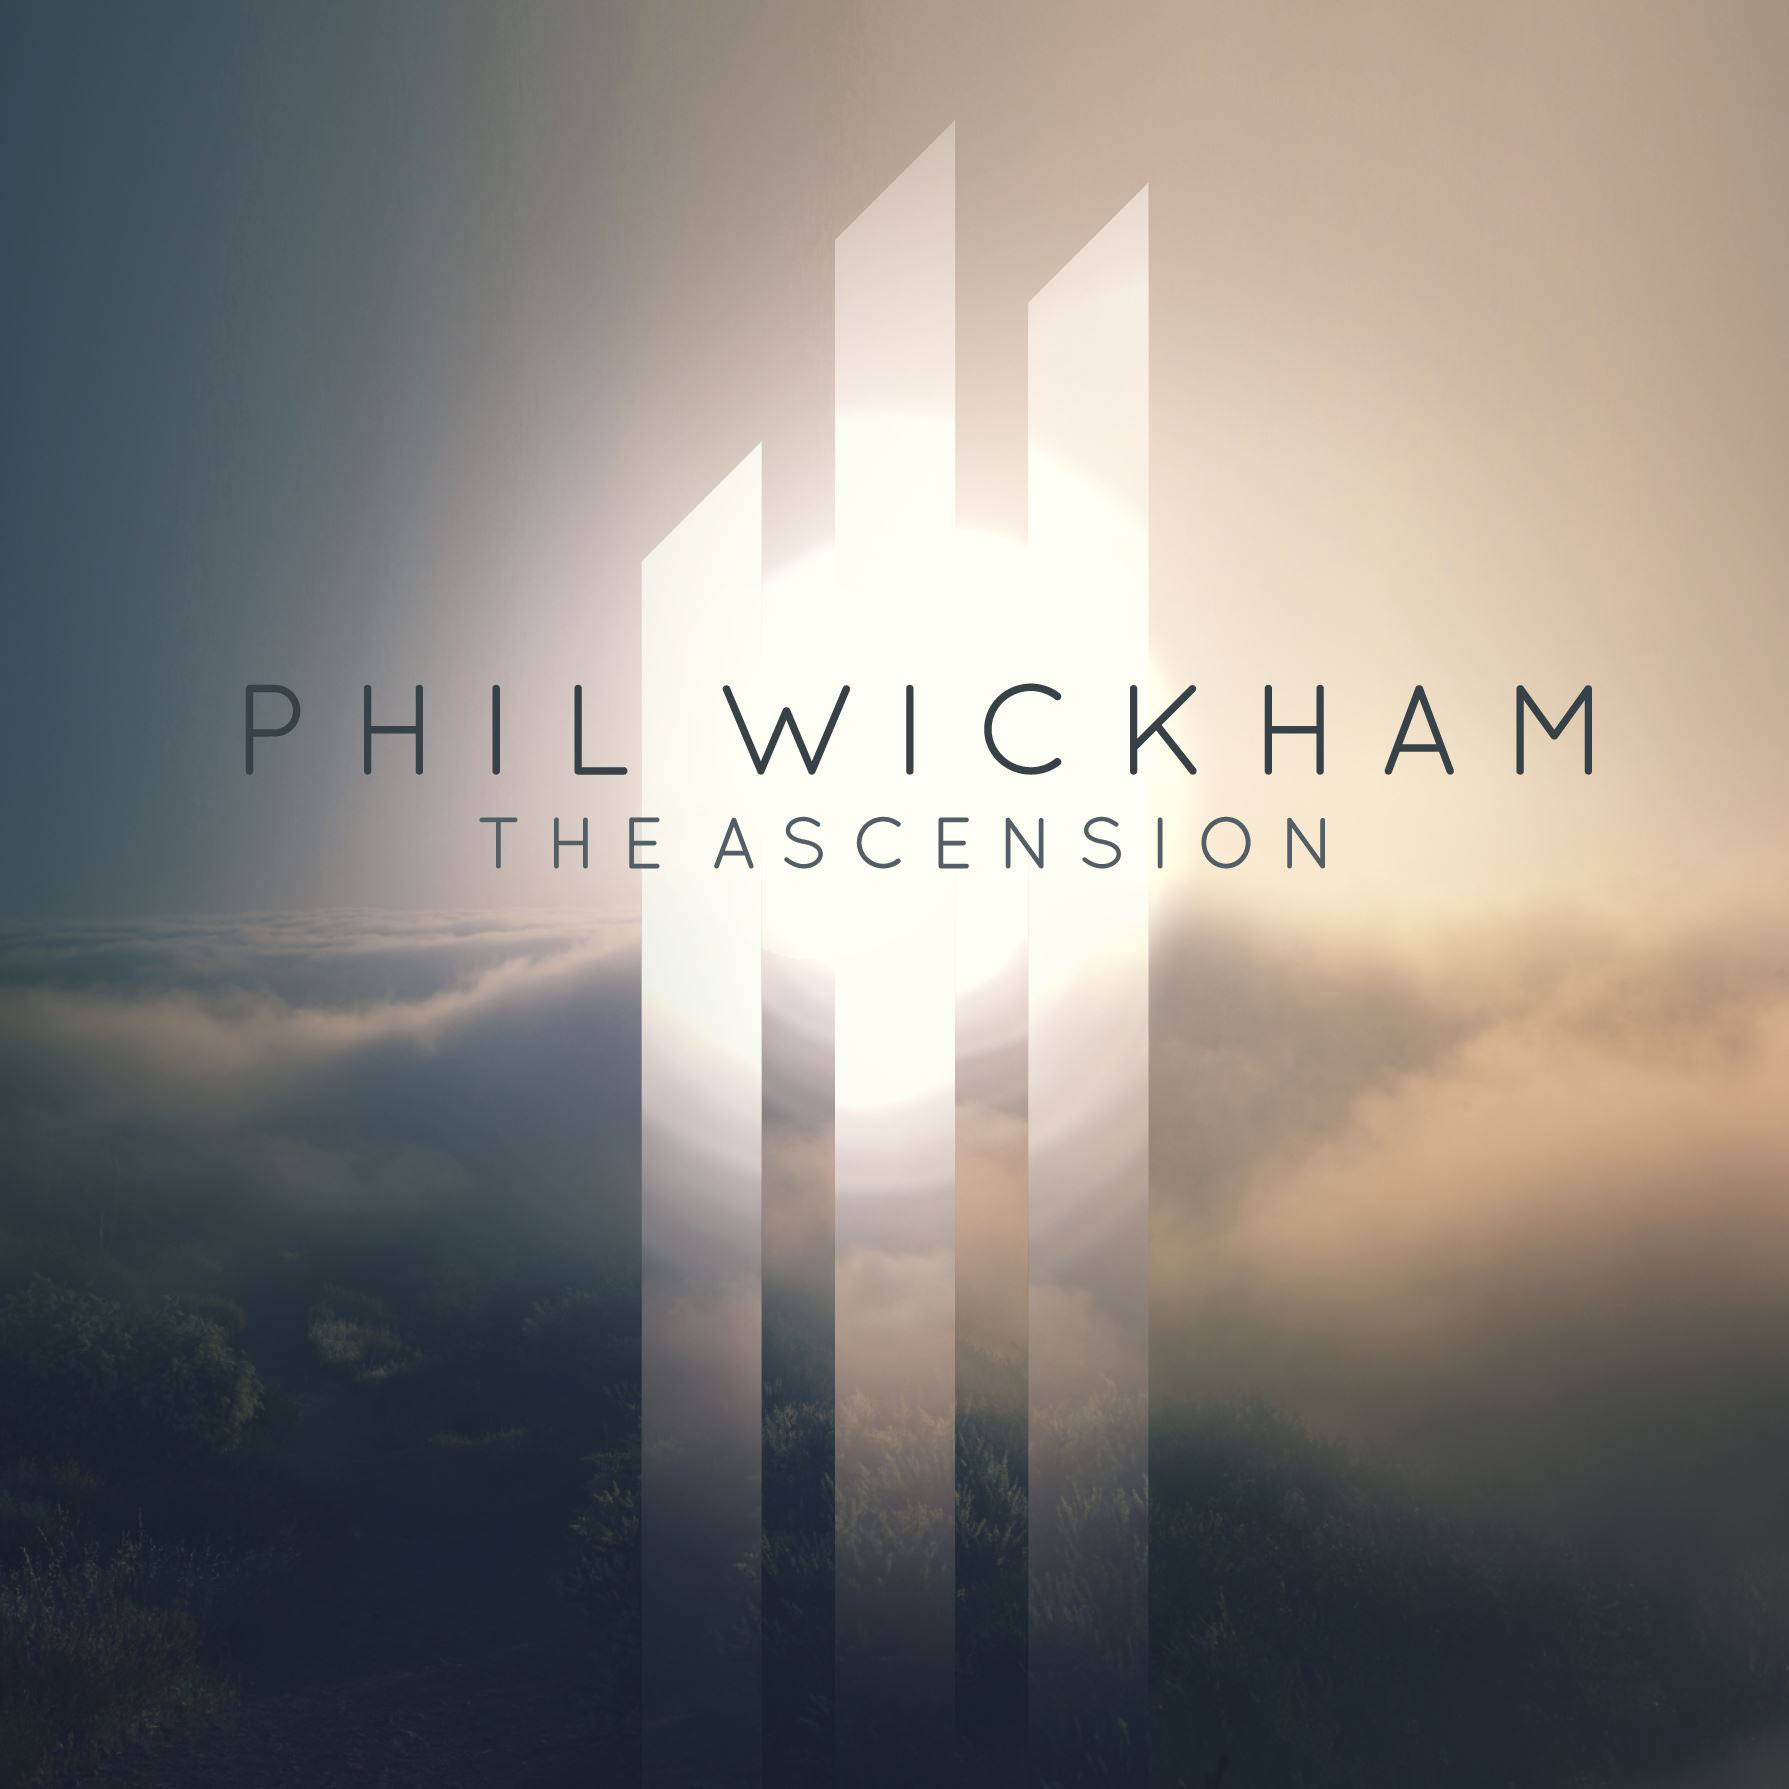 Phil Wickham - The Ascension